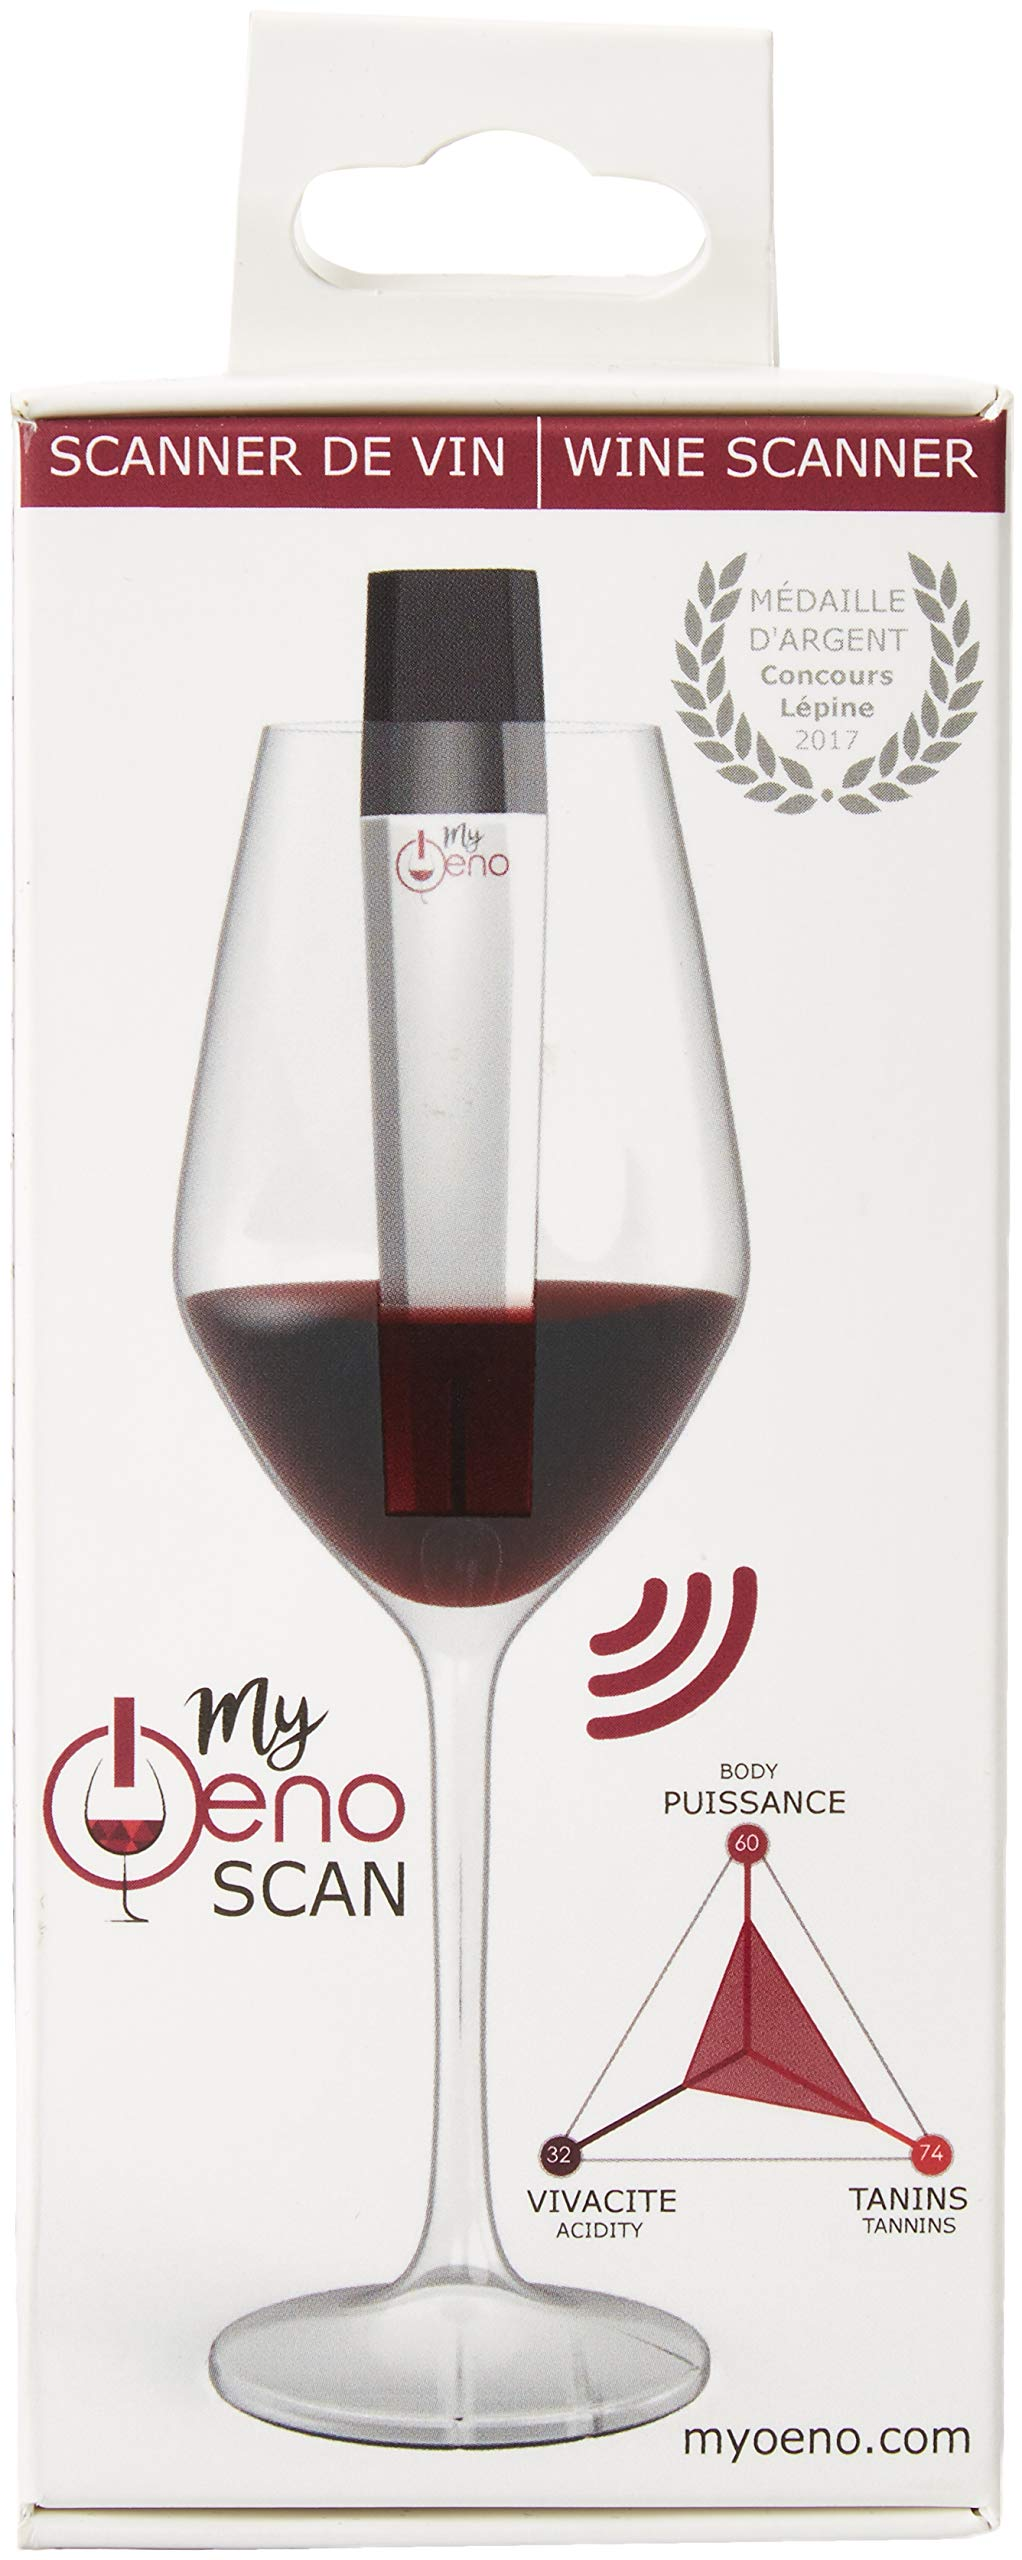 MyOeno The Smart Wine Scanner - Extract All The Relevant Information About Your Wine into Your Smartphone.